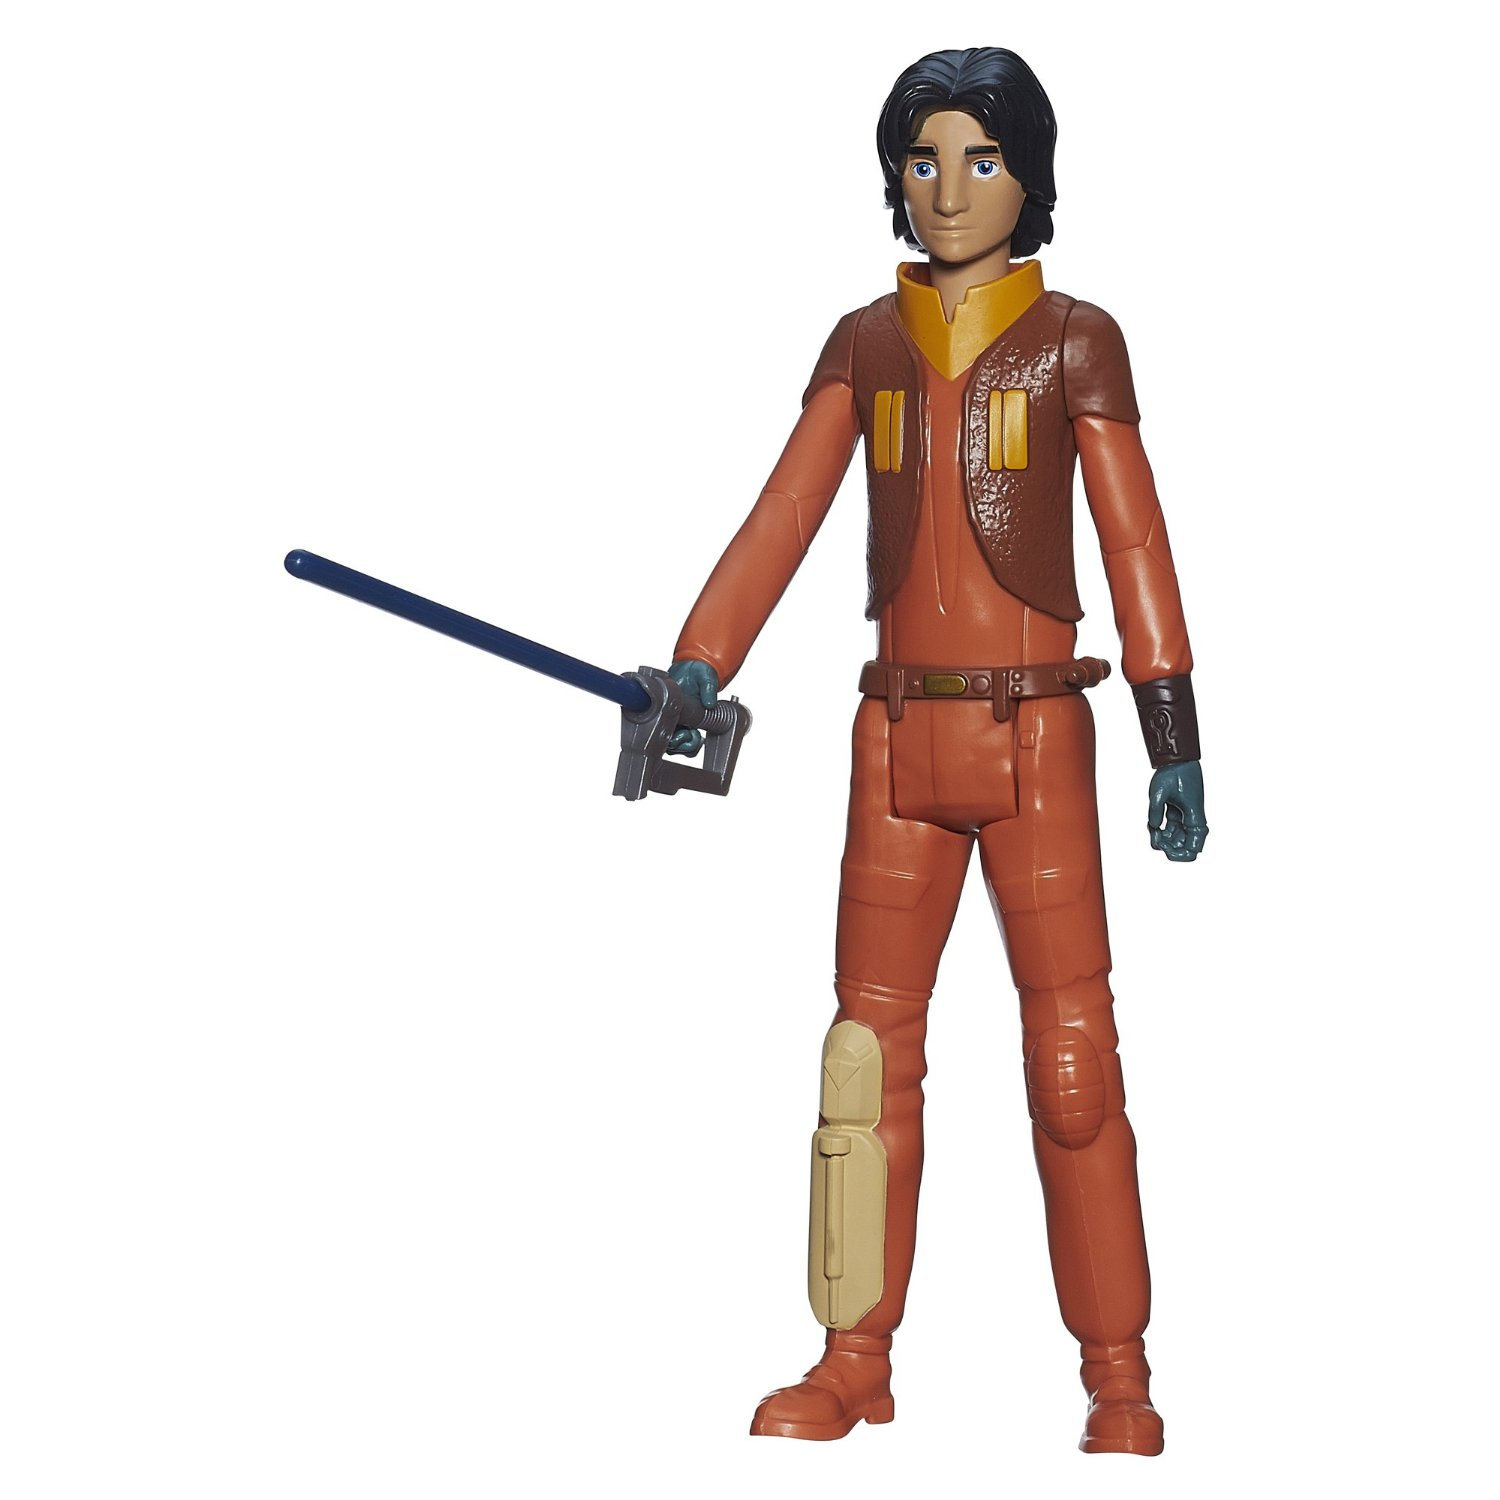 Star Wars 30 εκατοστά Figure Wave 4 - Rebels Ezra Bridger